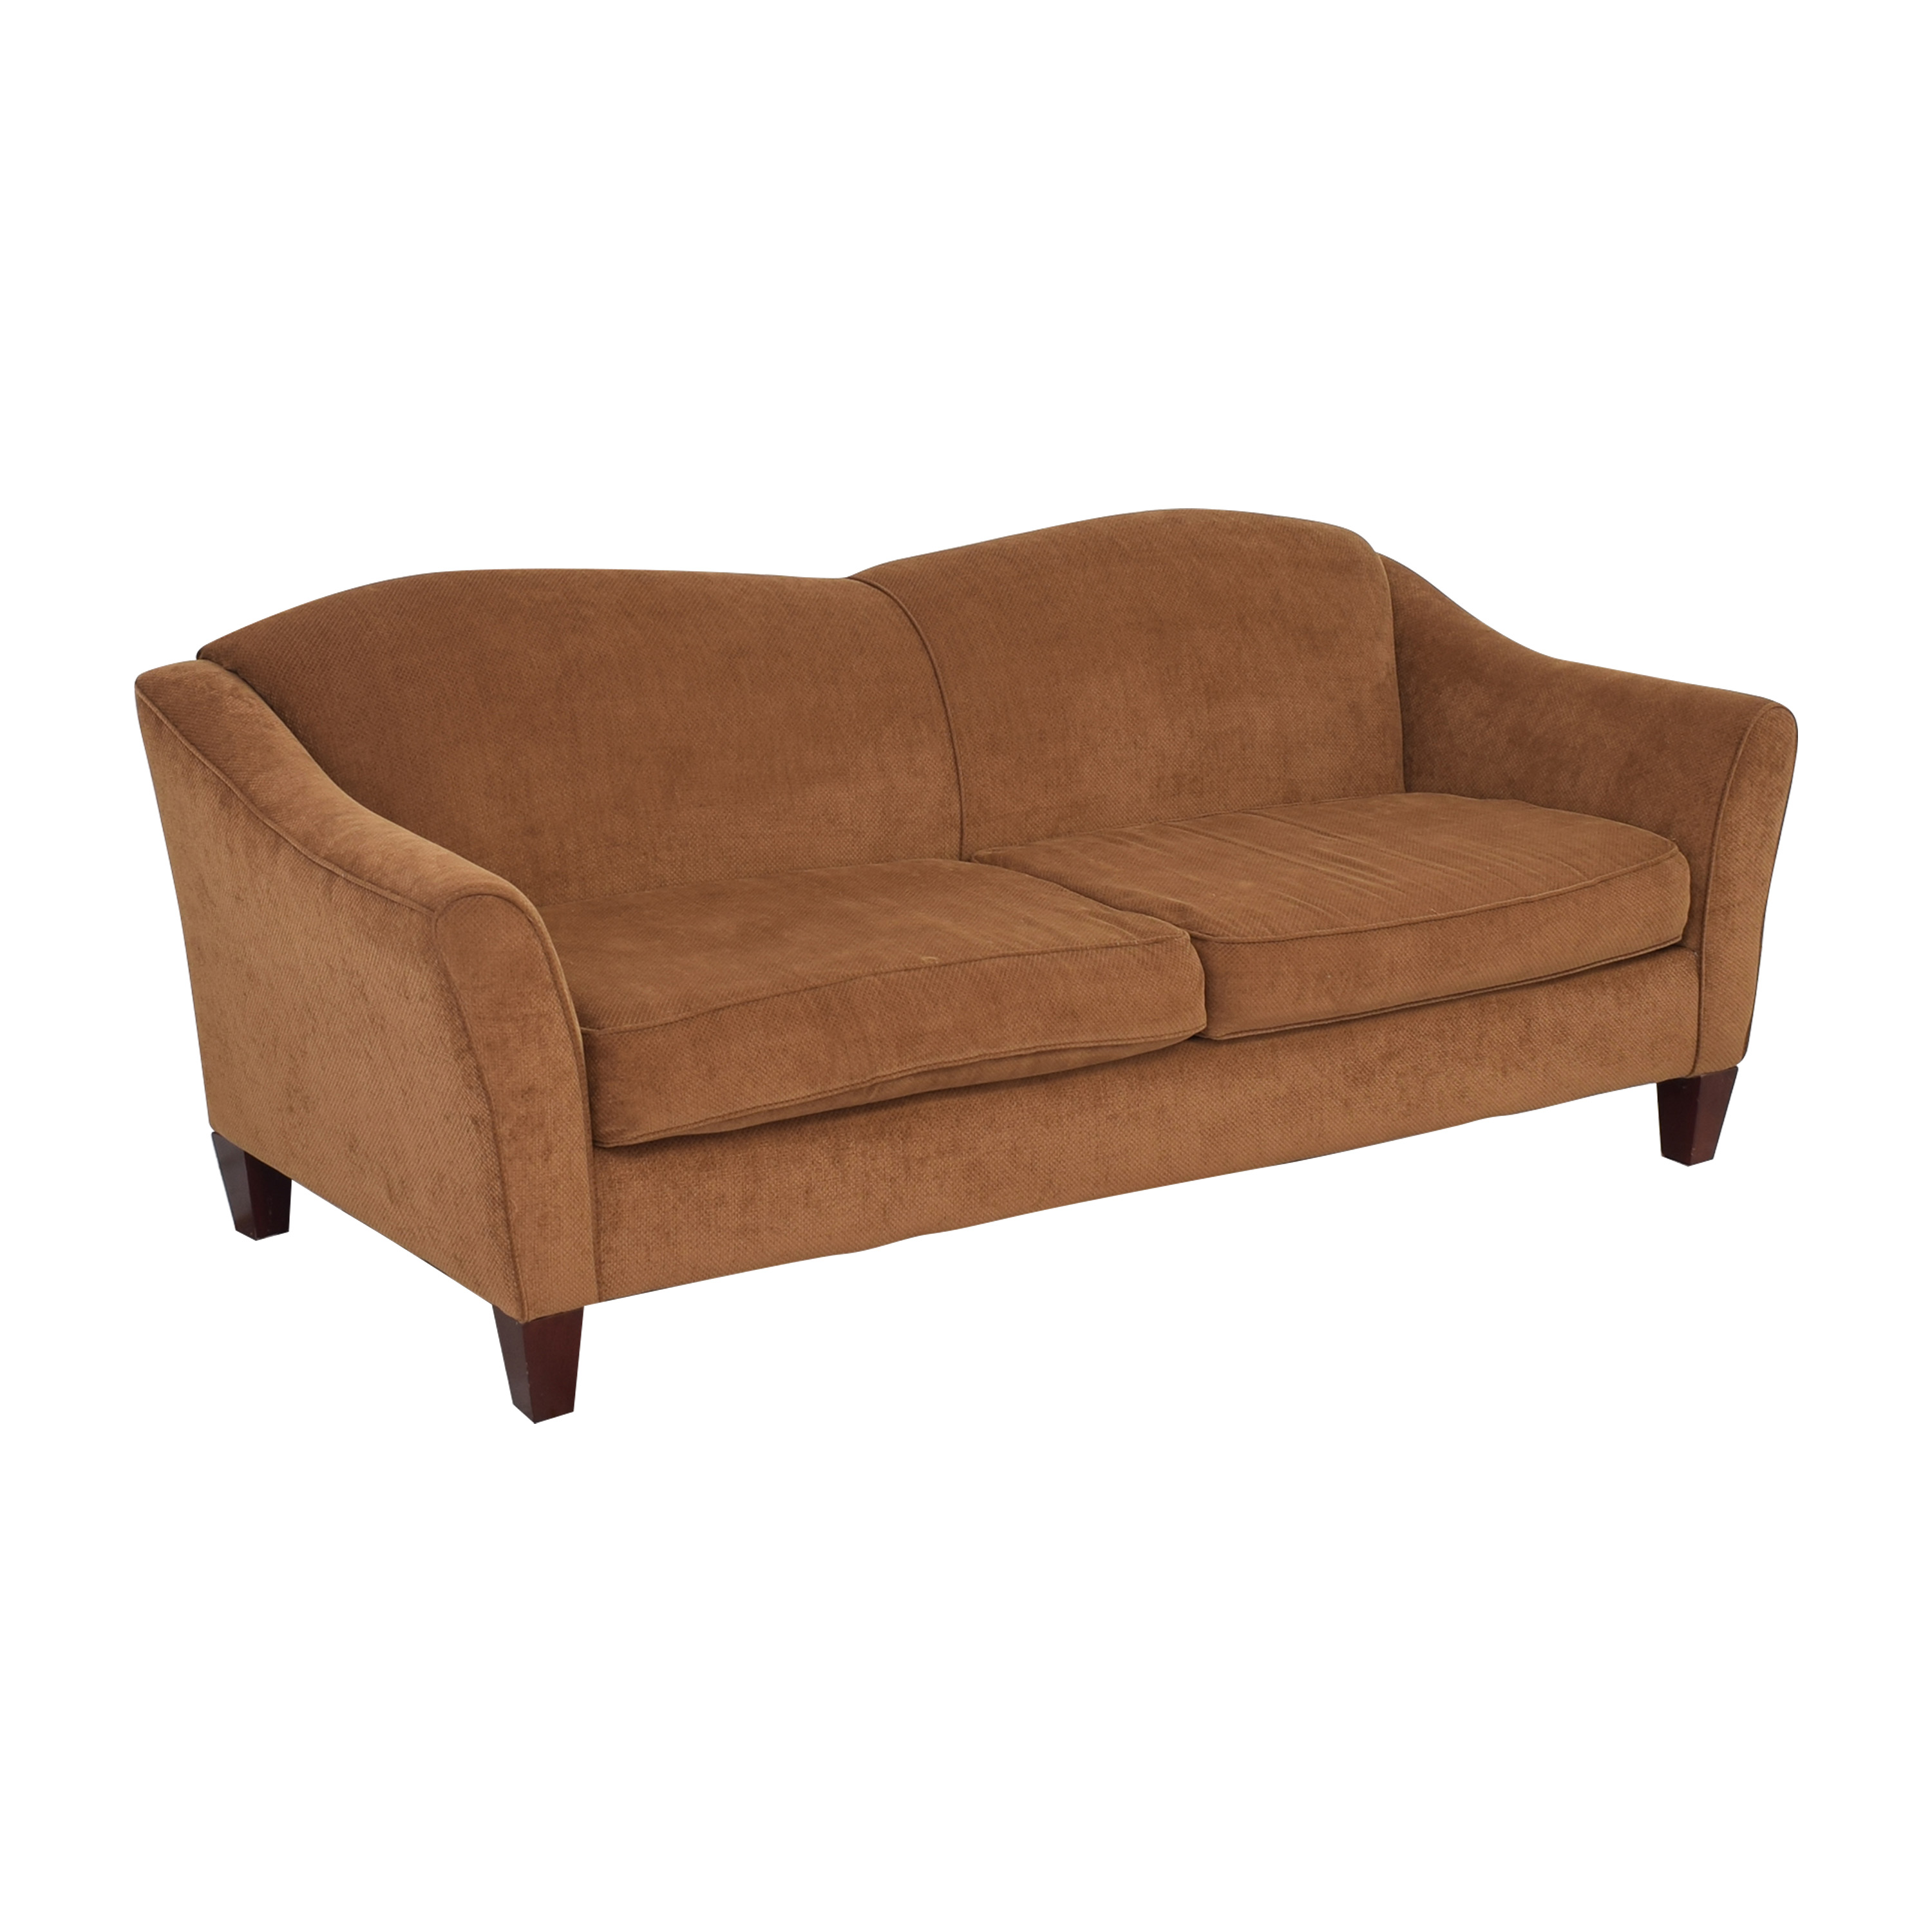 shop Klaussner Two Cushion Sofa Klaussner Sofas